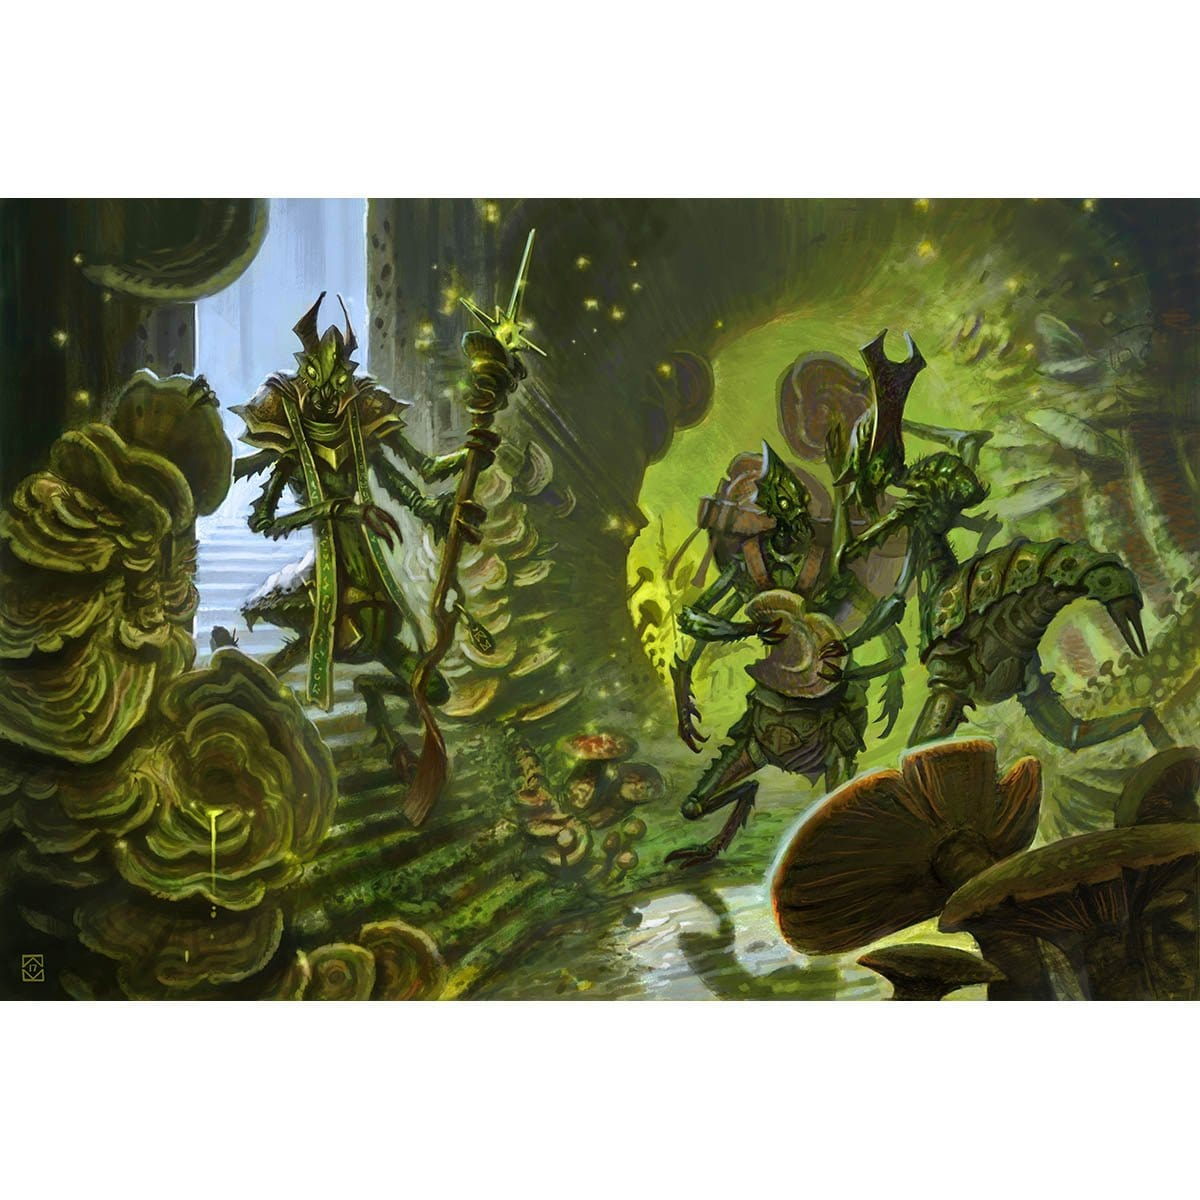 Kraul Foragers Print - Print - Original Magic Art - Accessories for Magic the Gathering and other card games